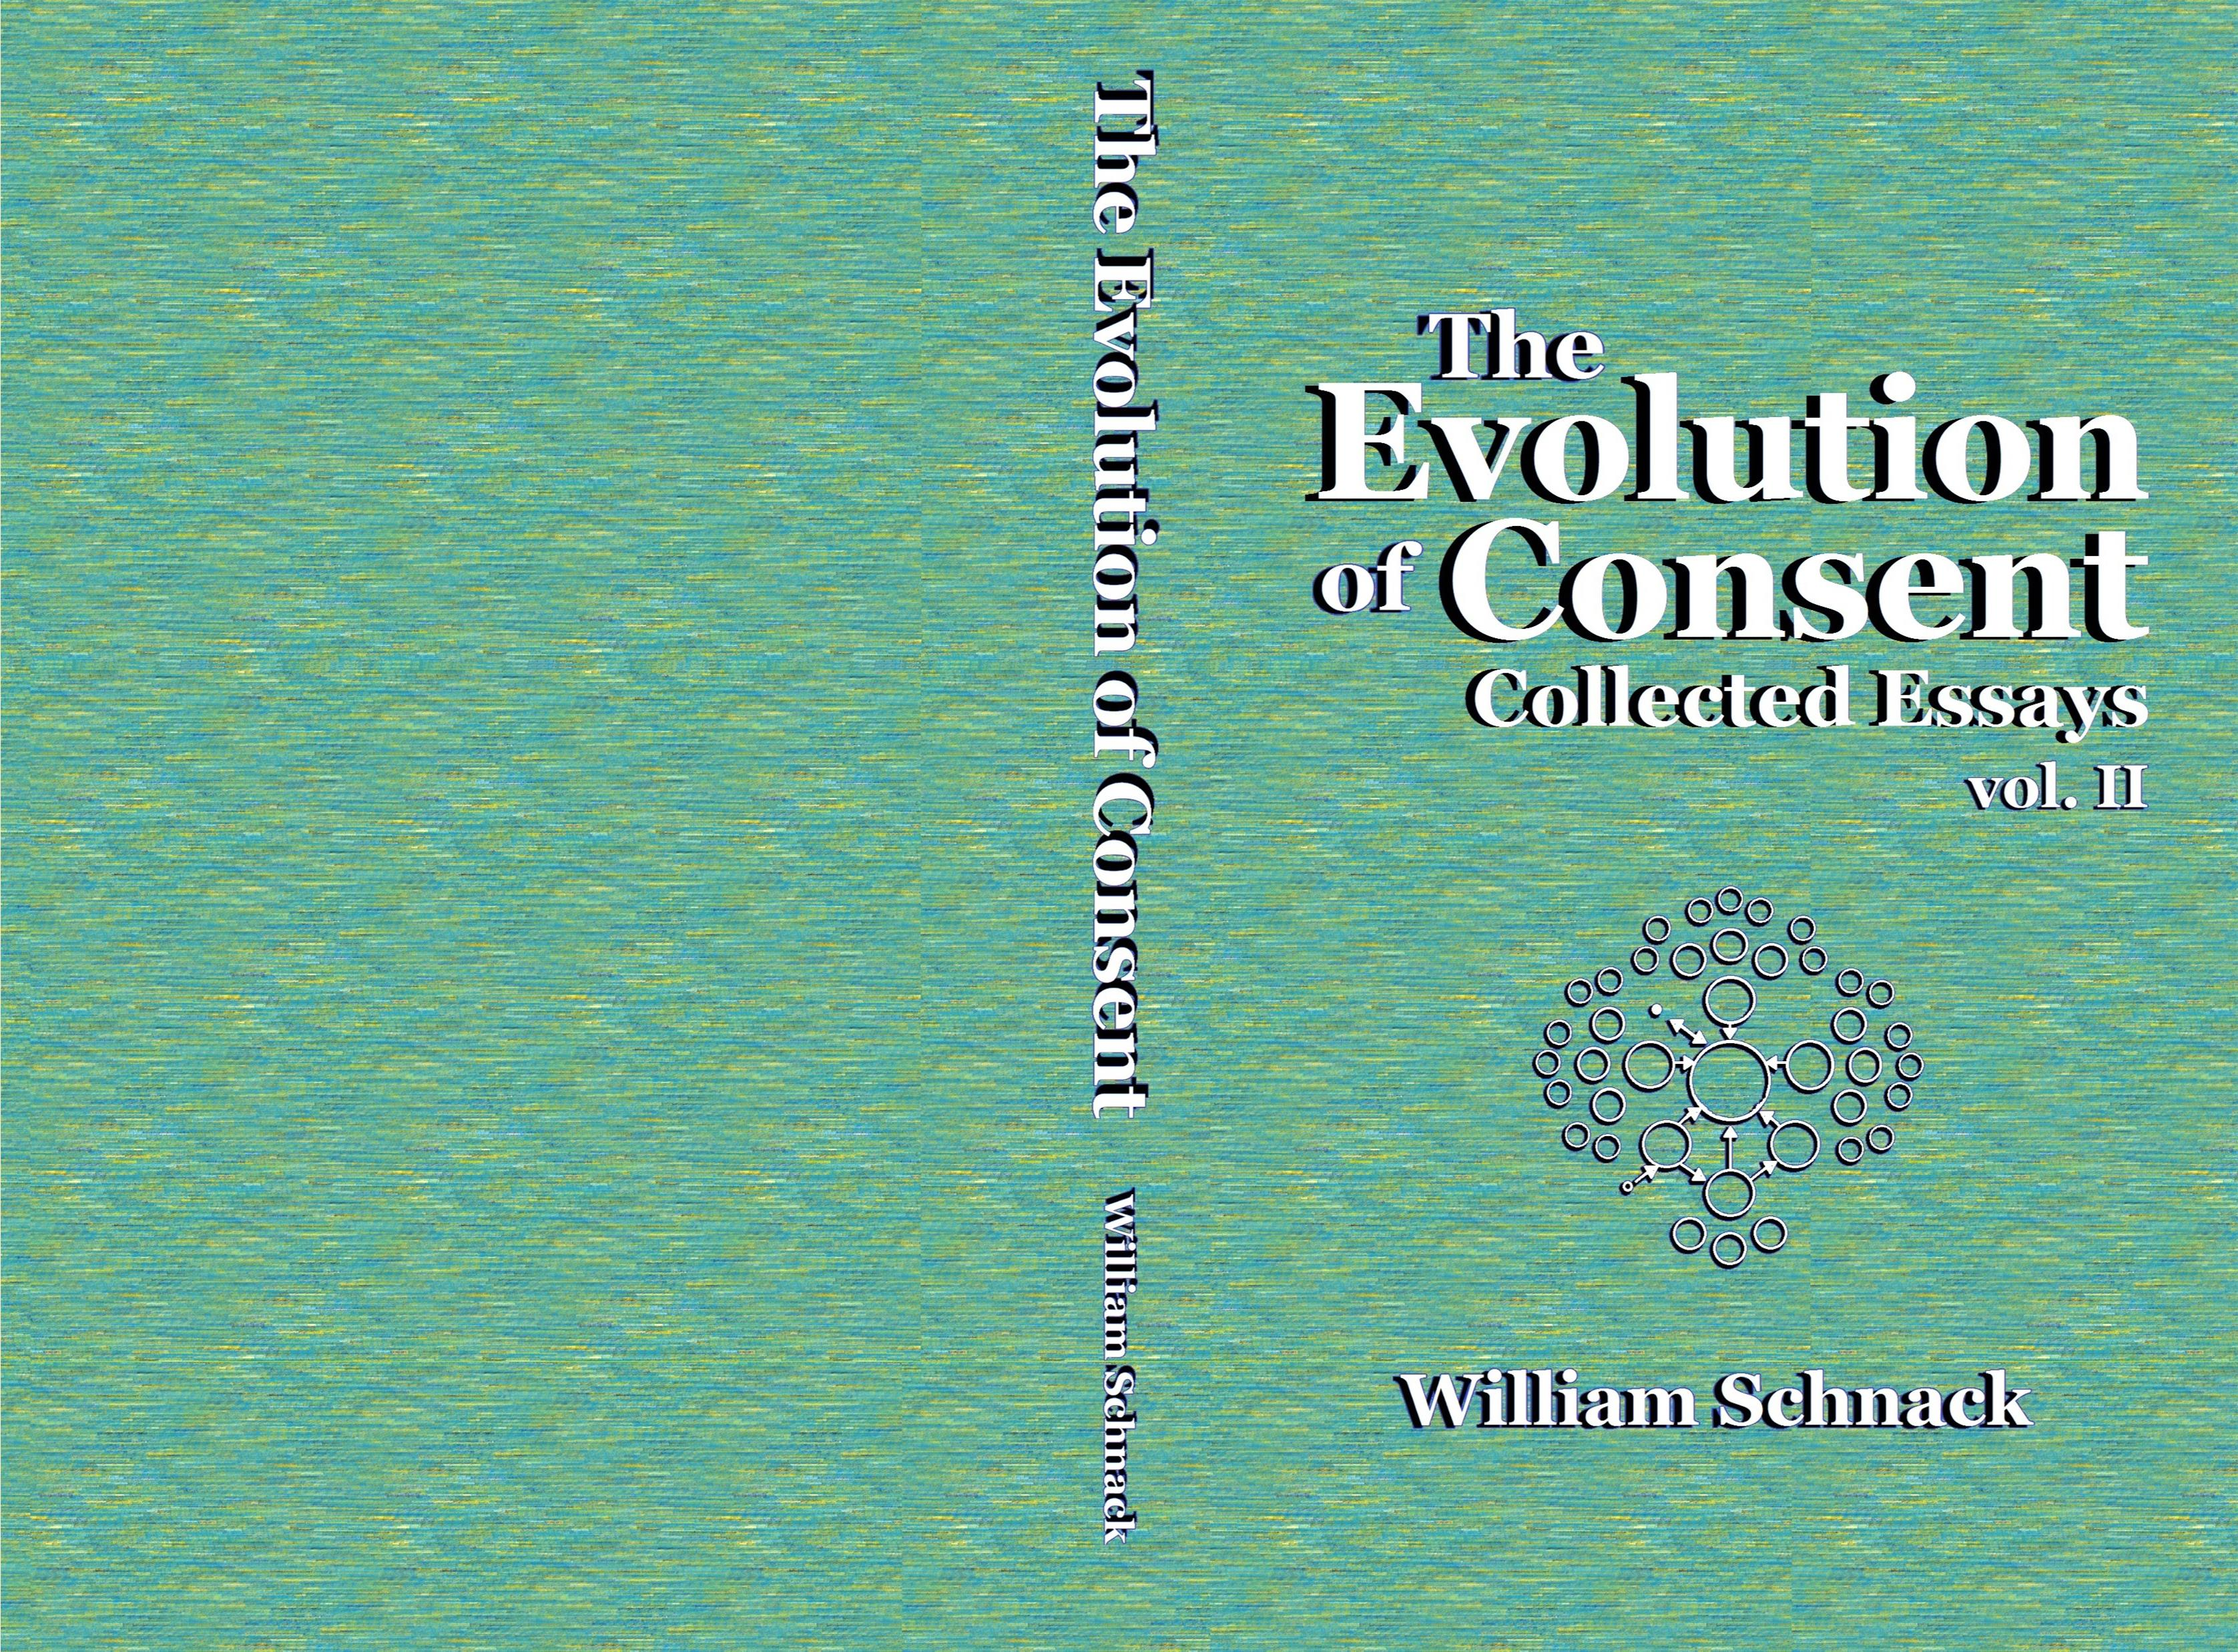 The Evolution of Consent: Collected Essays, vol. II cover image